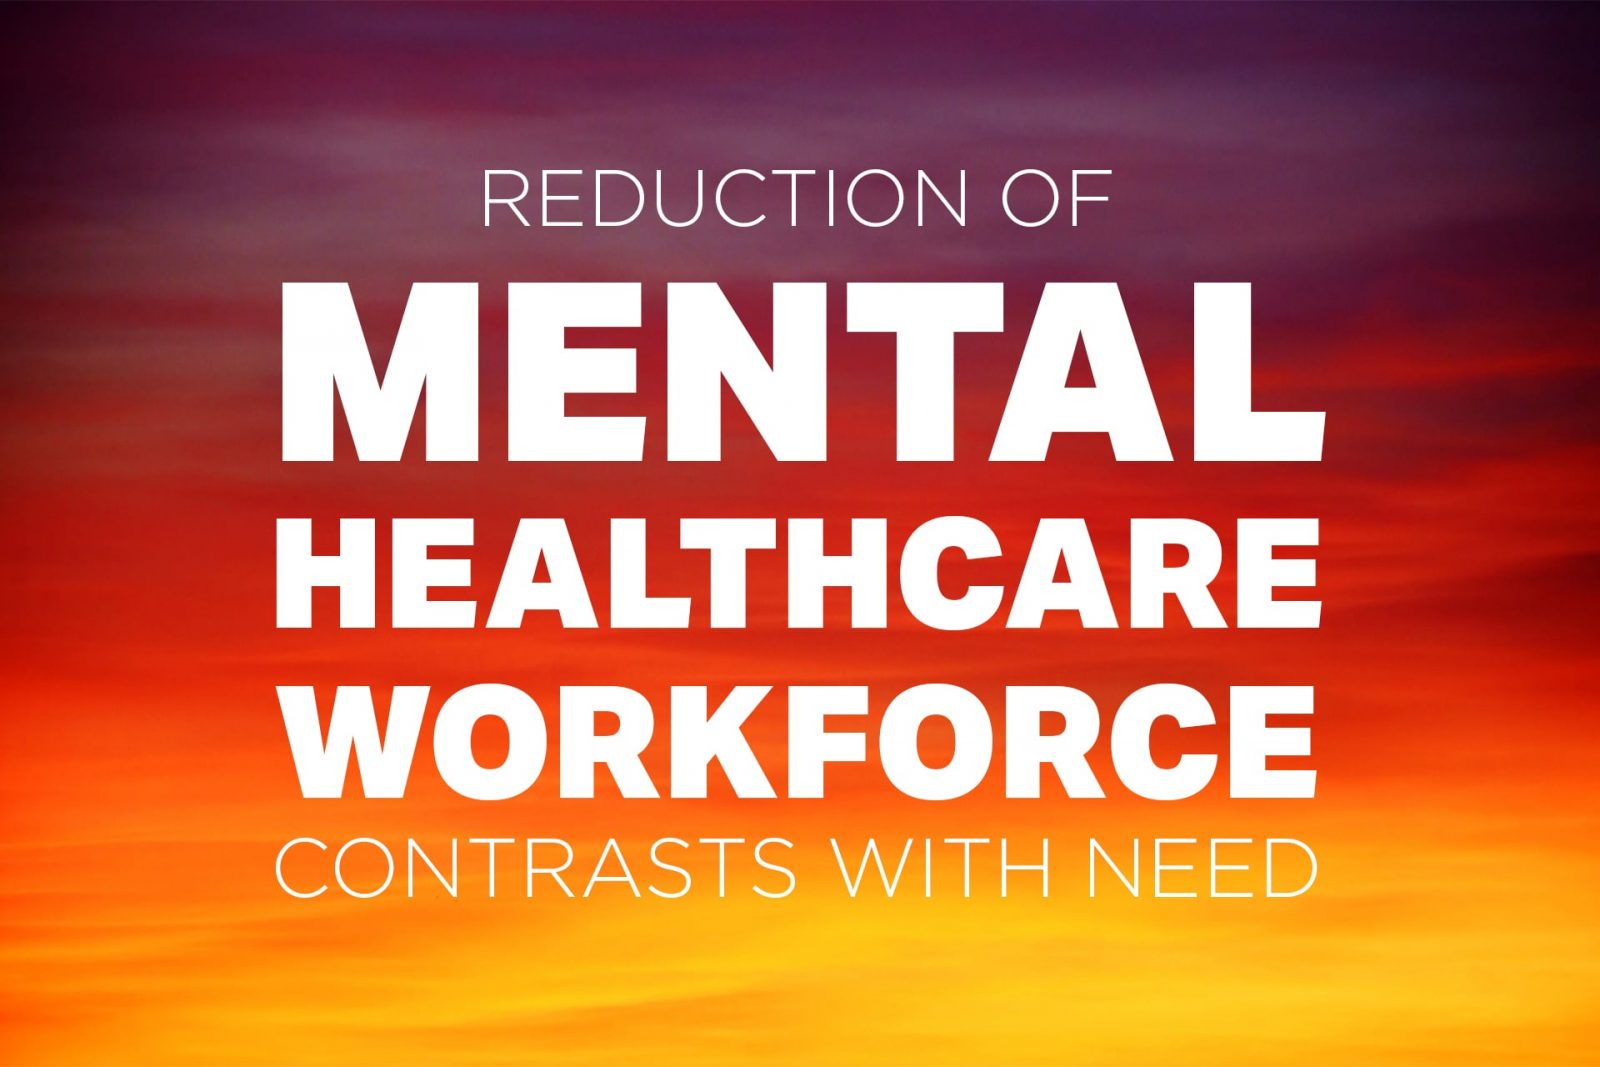 Reduction of Mental Healthcare Workforce Contrasts with Need